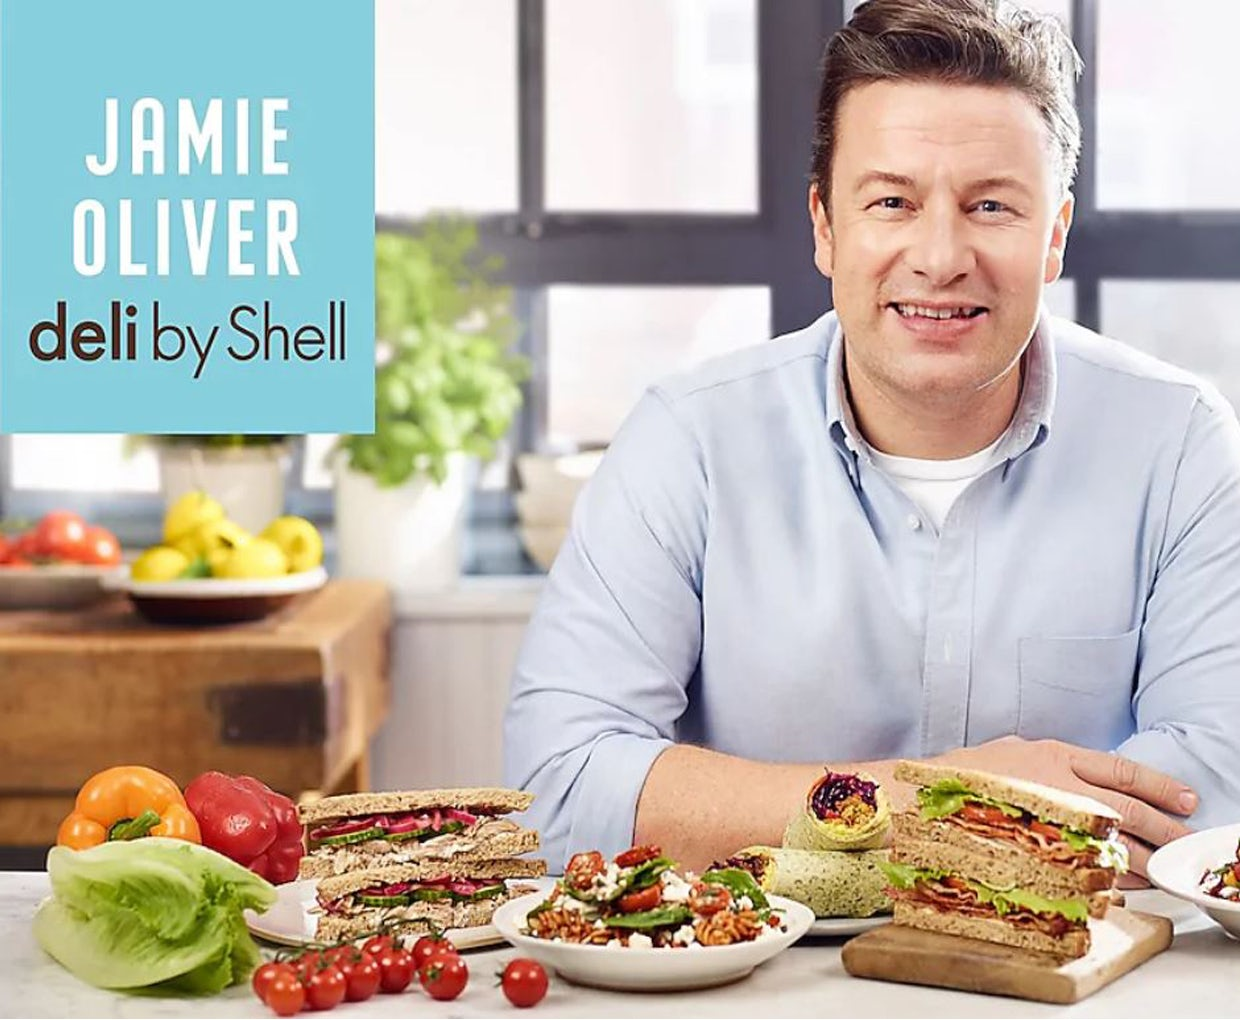 Ellen Hammett: Jamie Oliver's defence of his Shell deal suggests an over-inflated view of the power of his 'brand'